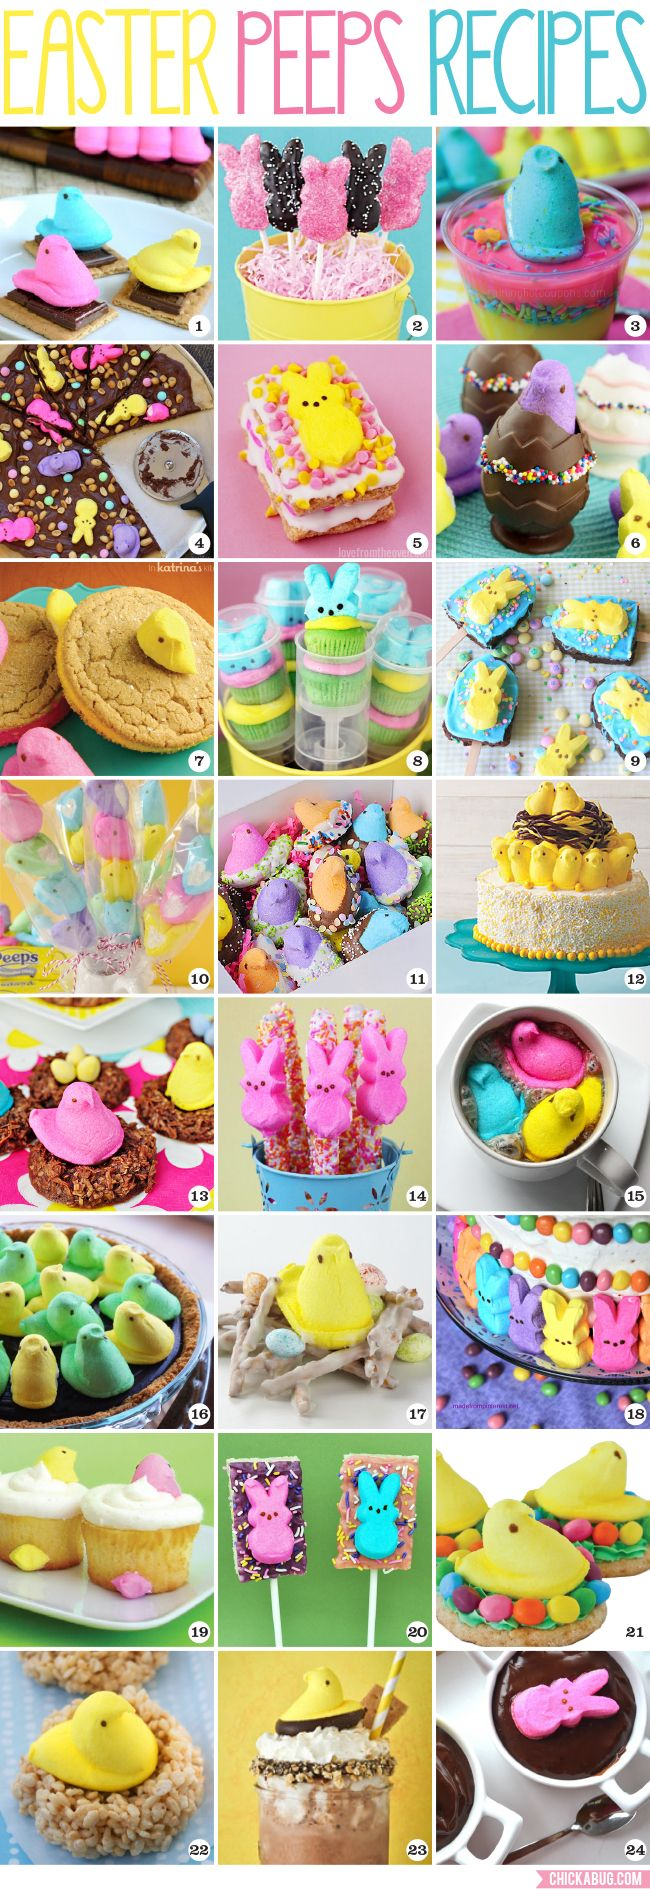 The Best Easter Peeps Recipes | Chickabug